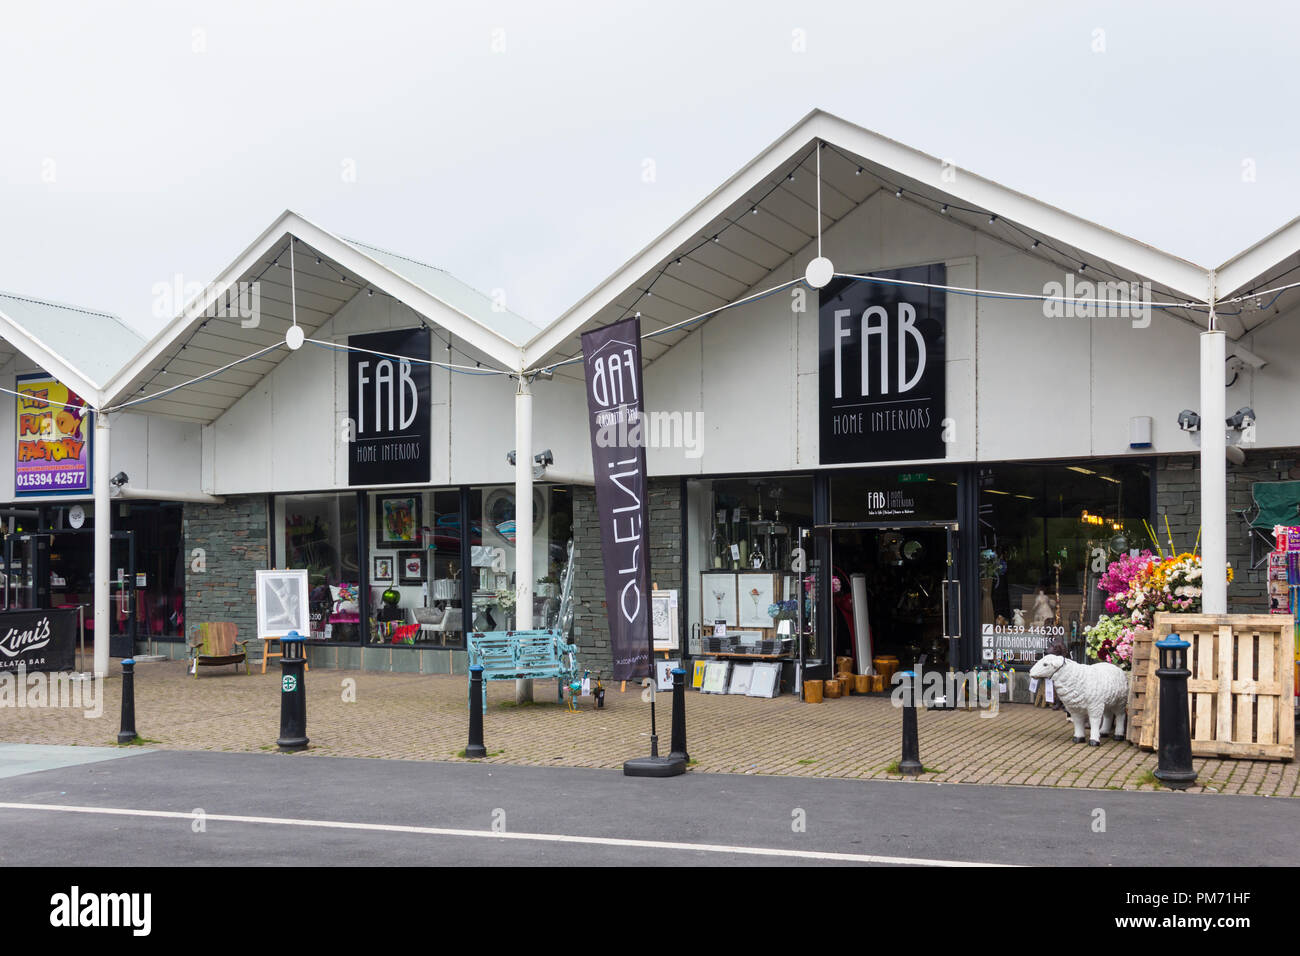 Fab Home Interiors Store On Glebe Road Bowness On Windermere In The English Lake District Fab Home Interiors Specialise In Home Interior Decor Stock Photo Alamy